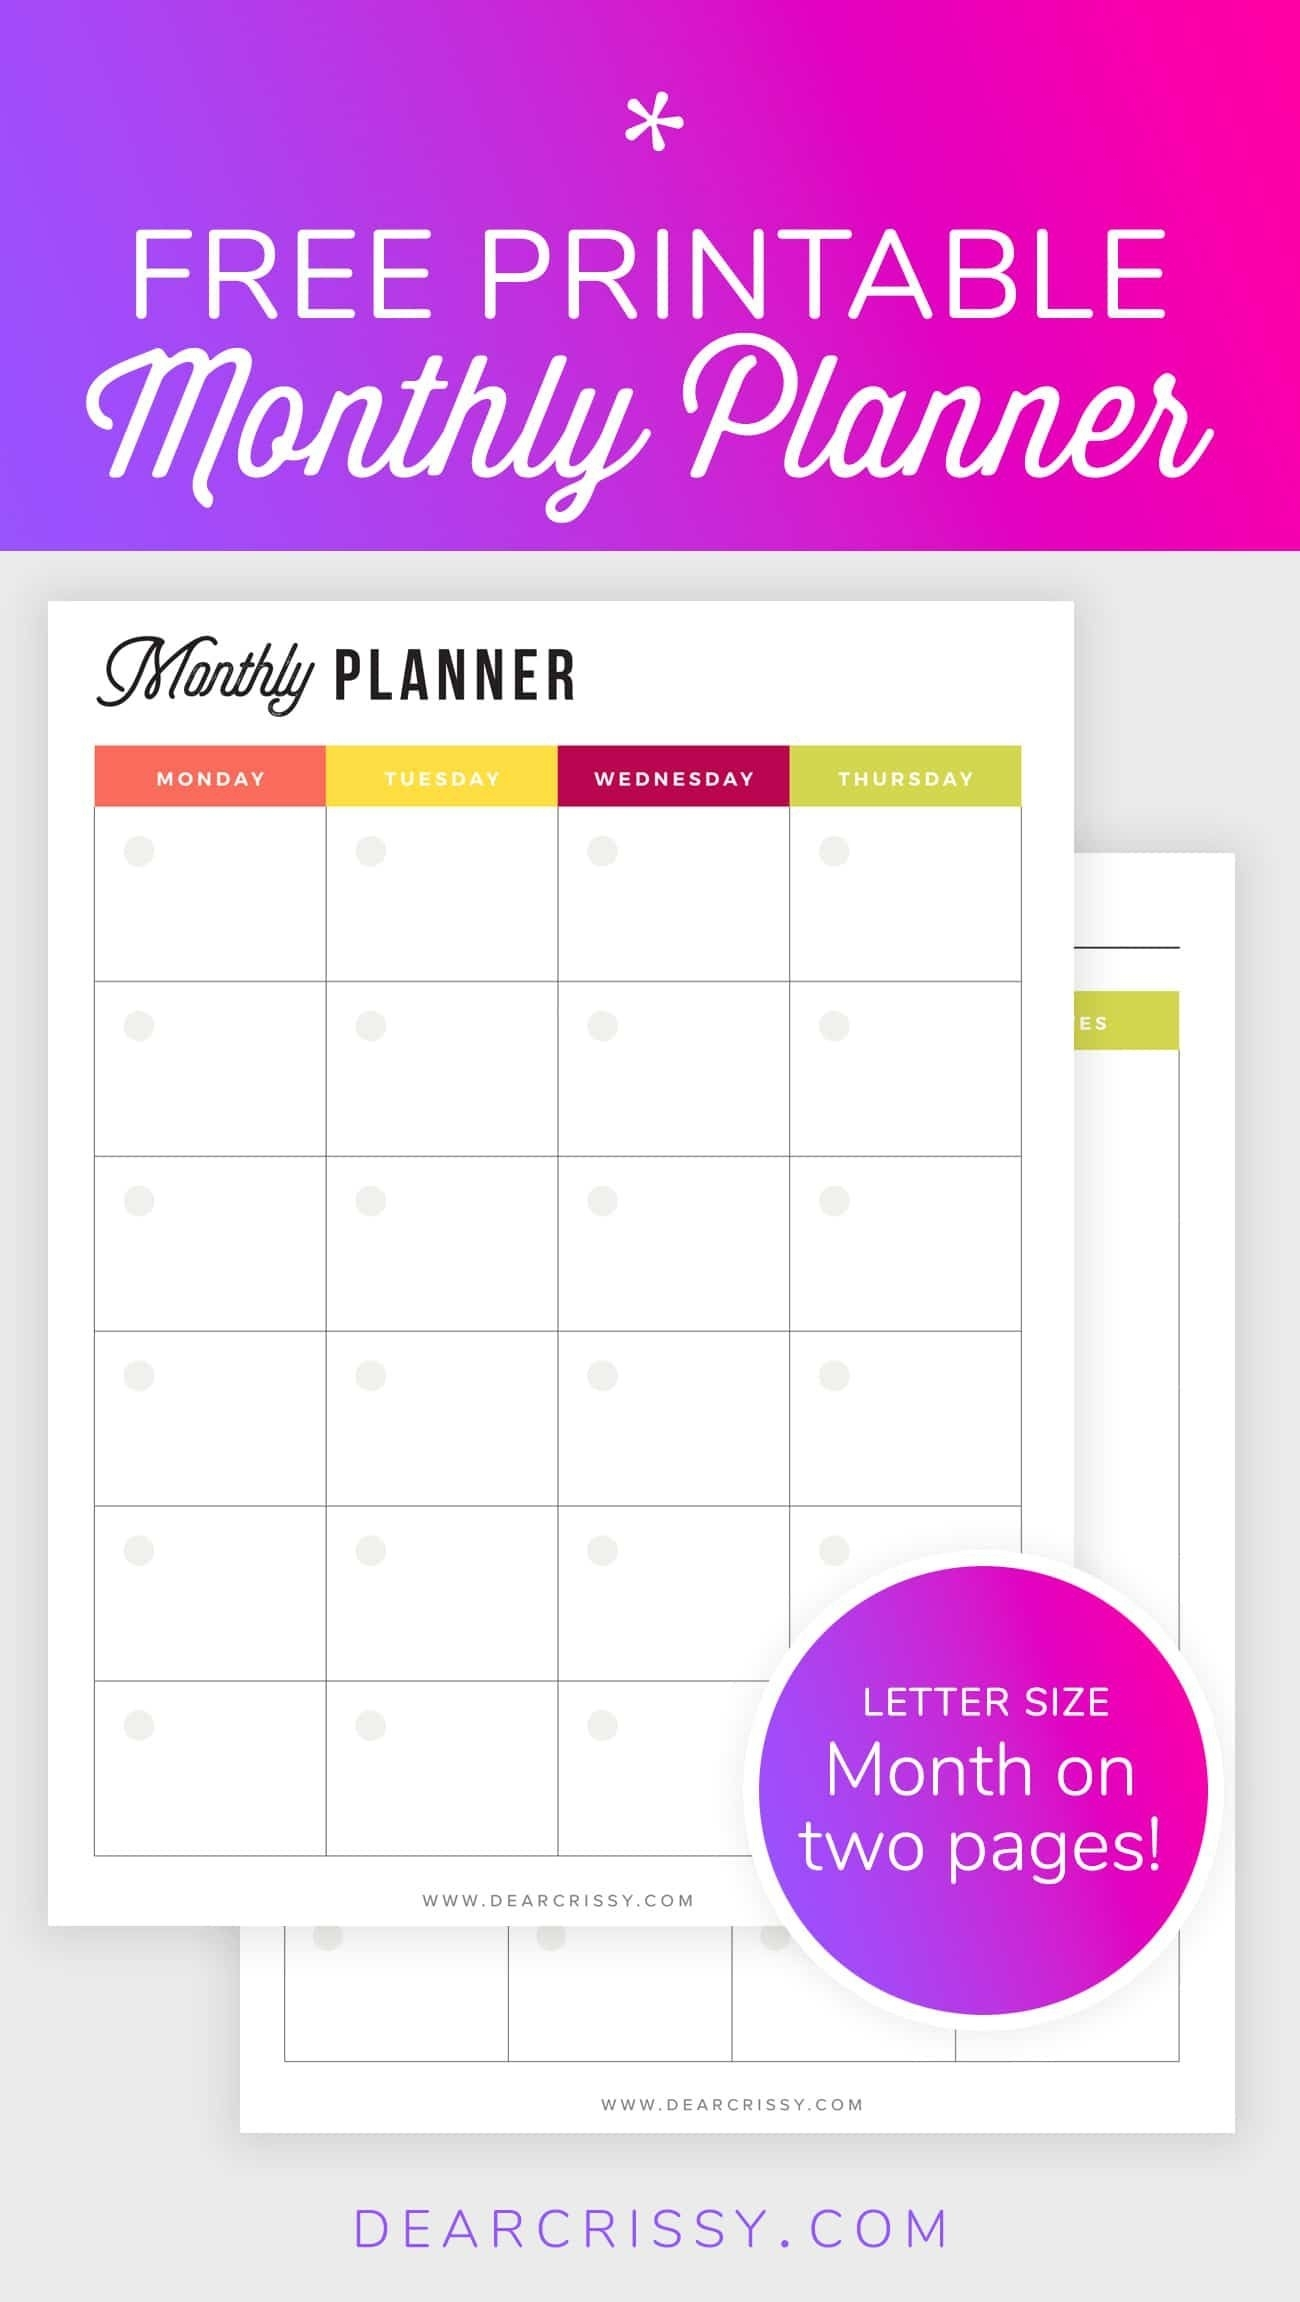 Free Printable Monthly Planner - Mo2P Letter Size Planner